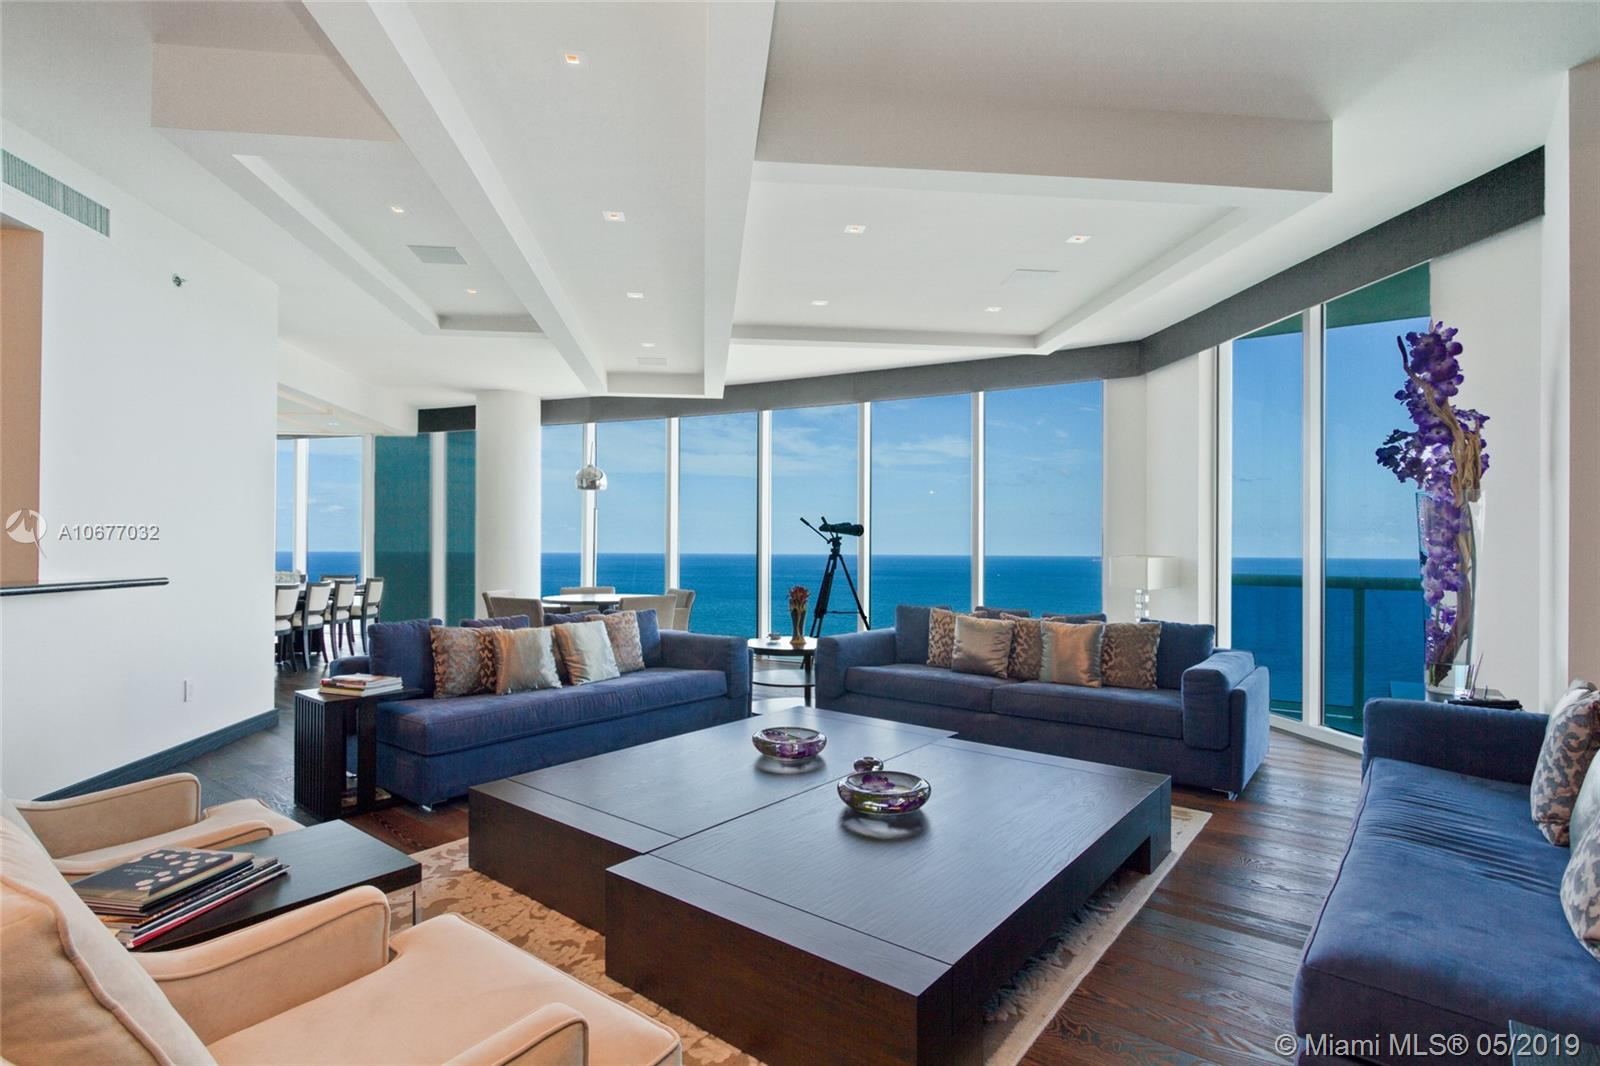 Breathtaking oceanfront Sky Residence, South-East Corner unit. 5086 Sq.ft under A/C, 920 sq.ft private terraces. 5bd, 6.5 bths, plus library TV room living, dining area & gourmet kitchen. Settled on 270 feet of pristine white sand. Enjoy panoramic views of the Atlantic, Intracoastal and city skyline from 11'' floor-to-ceiling impact proof windows and wrap-around terraces. This Home is professionally decorated, the custom kitchen offers designer appliances, including temperature-controlled wine storage and a Miele espresso machine. Perfect for entertaining, this residence features an elegant dining room with spacious family room, all with ocean or Intracoastal views.